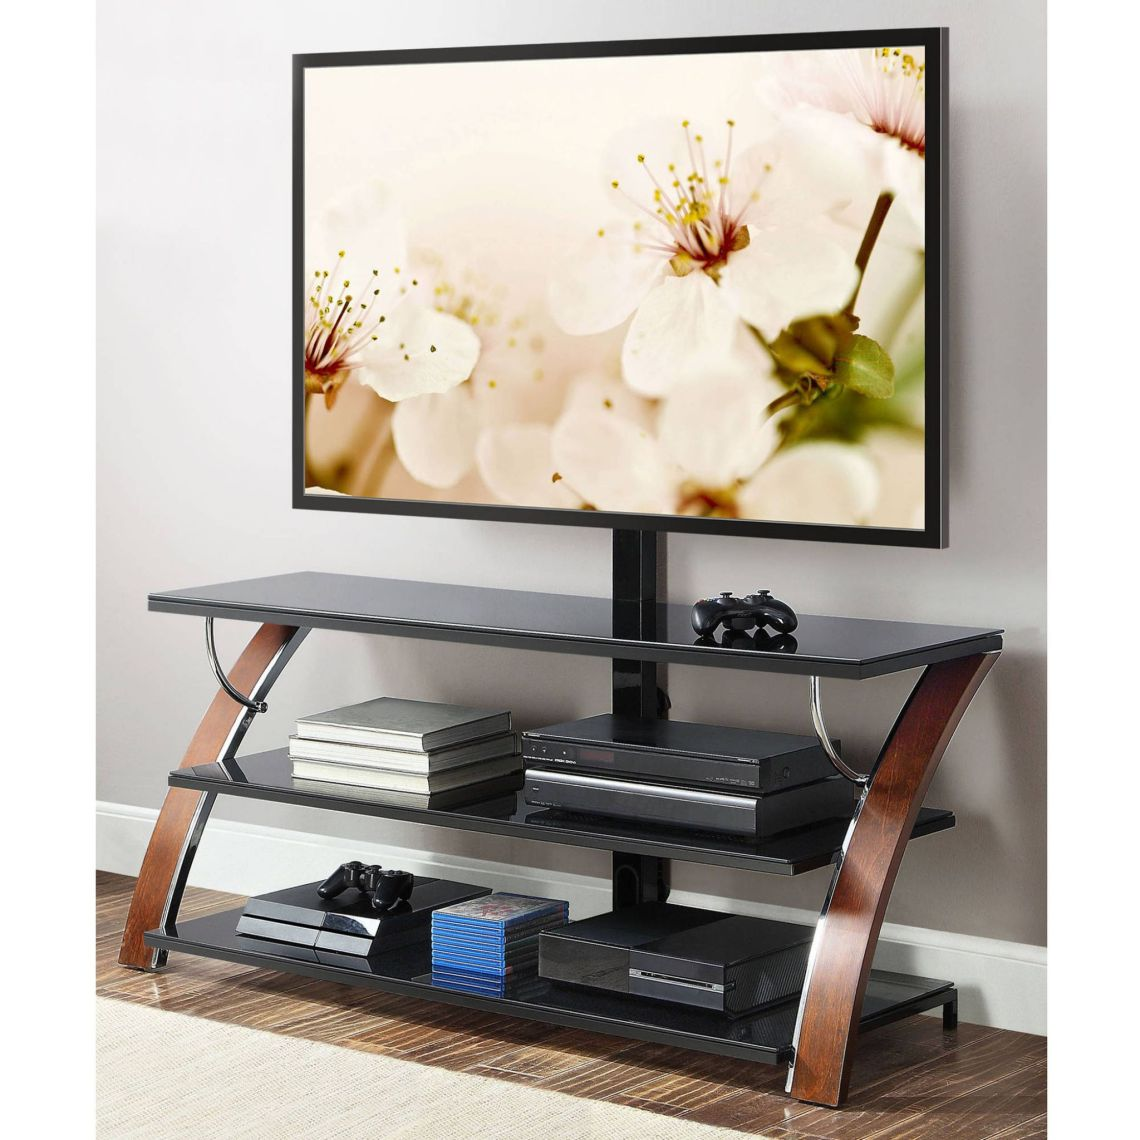 """Whalen Payton Brown Cherry 3-in-1 Flat Panel TV Stand for TVs up to 65"""" - Walmart.com"""